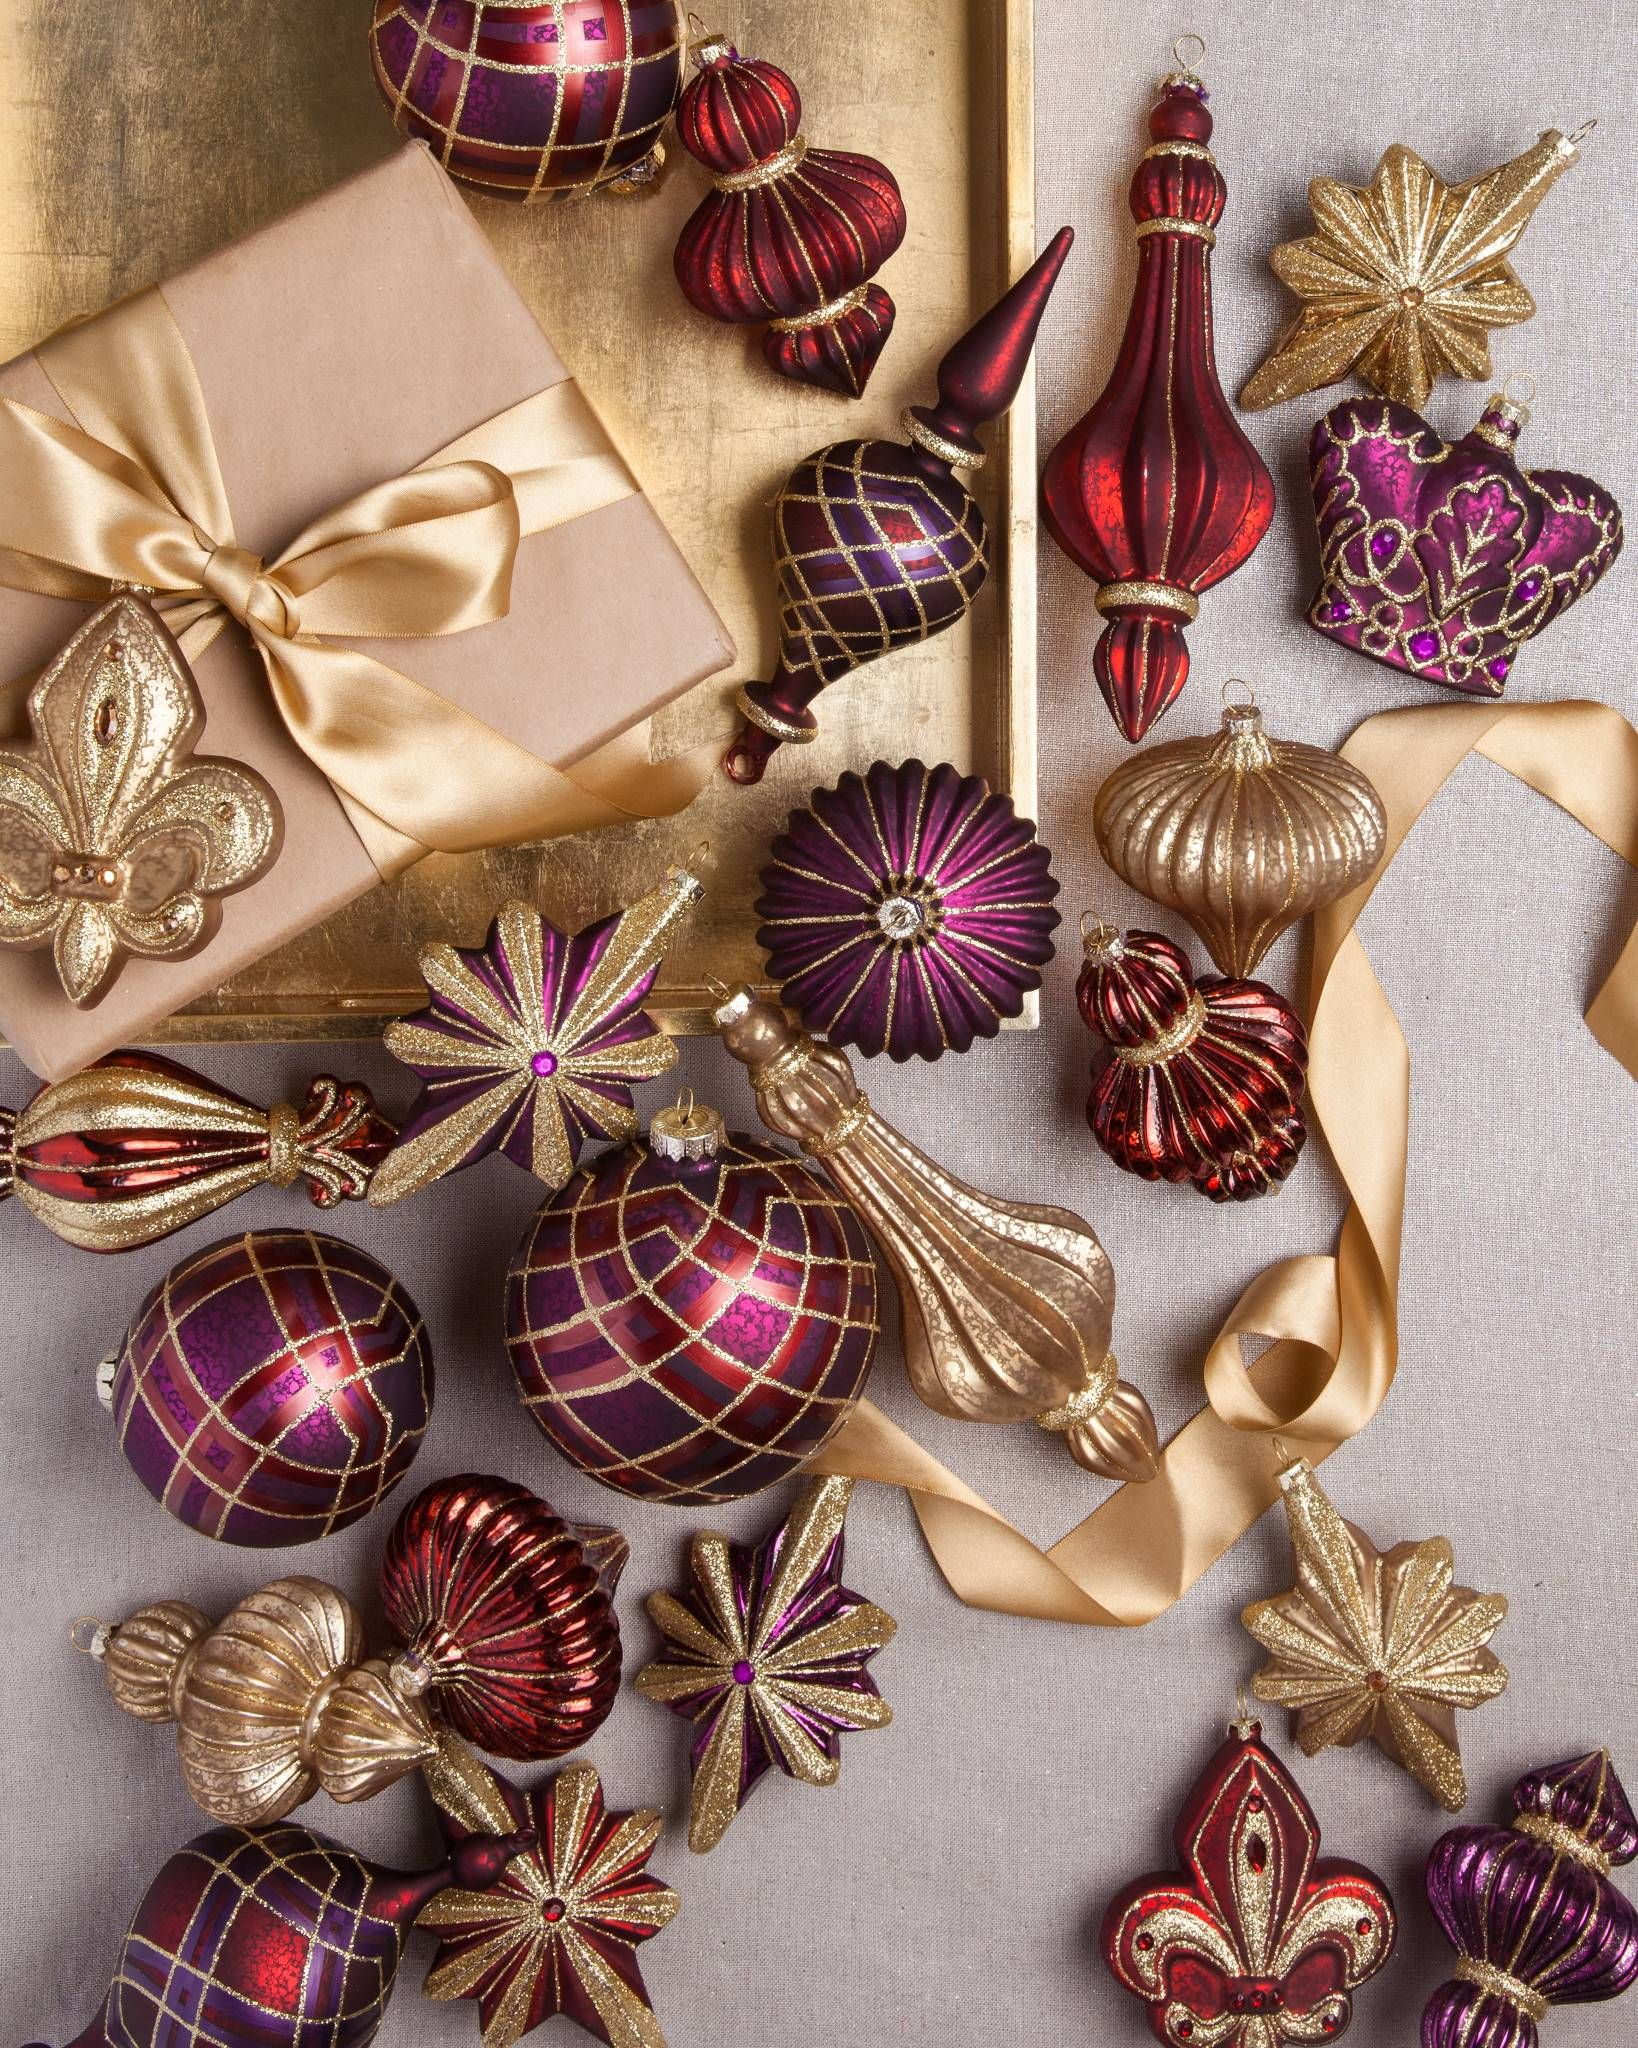 Elegant Baubles Feature A Variety Of Designs Such As Finials Crowns And Fleur De Lis Iconic Symbols Christmas Ornament Sets Ornament Set Christmas Ornaments